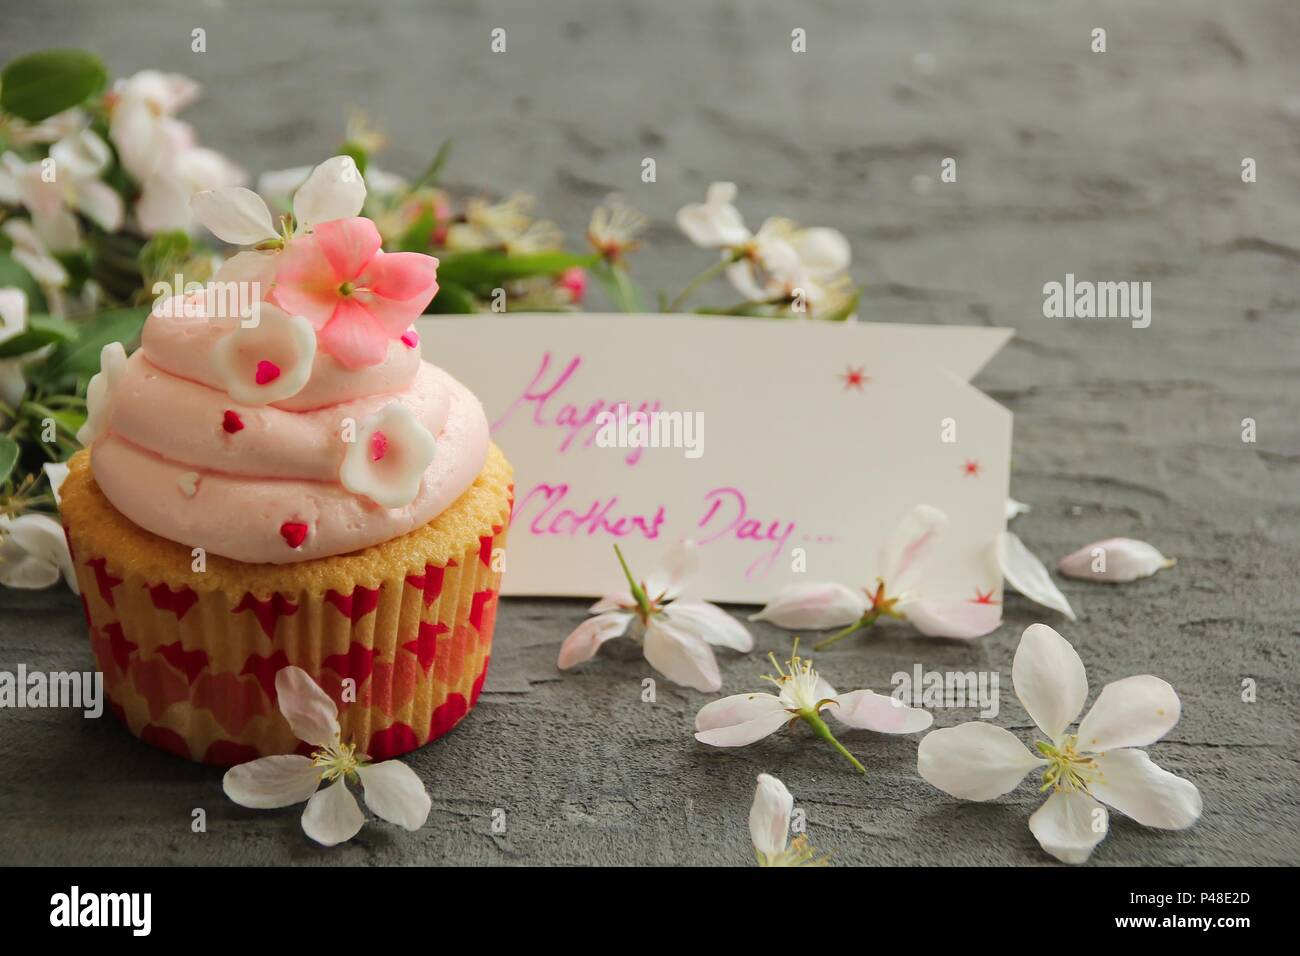 Homemade Cupcake With Frosting And Fondant Flowers Stock Photo